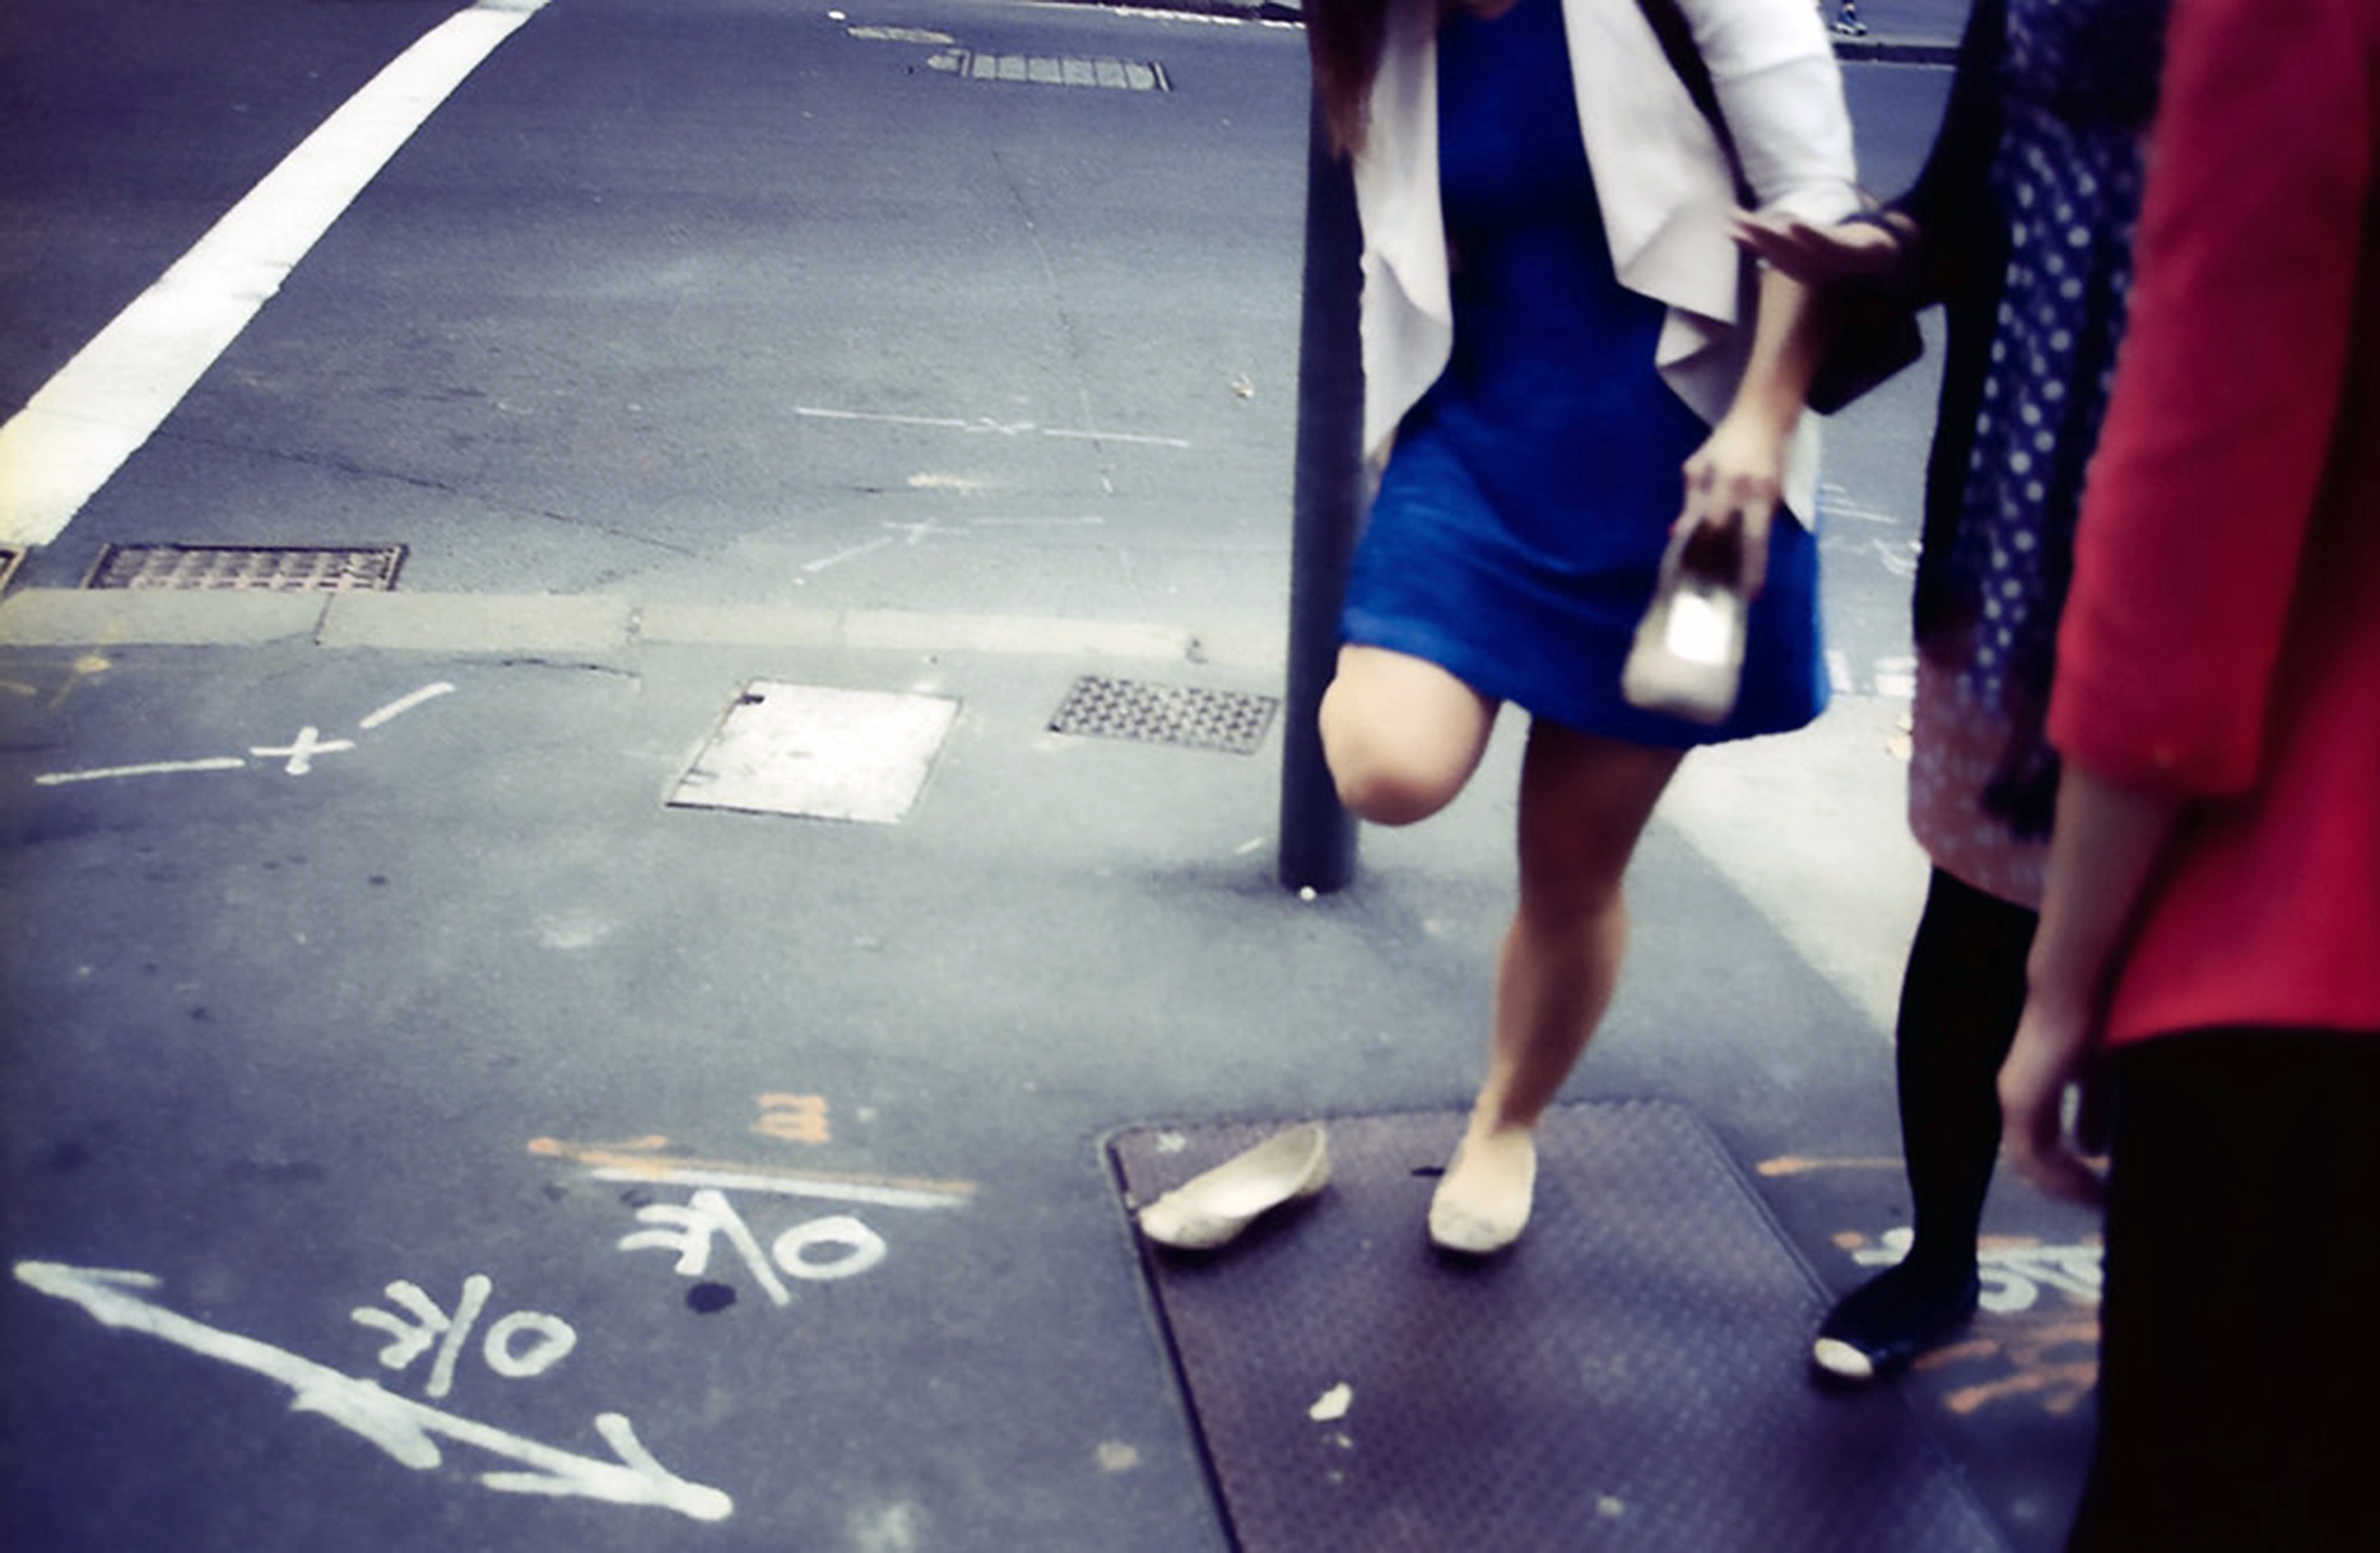 021_didi-s_gilson_australian_street_photpgraphy_film_flash_sydney_women_shoes_three_ok_2013.jpg